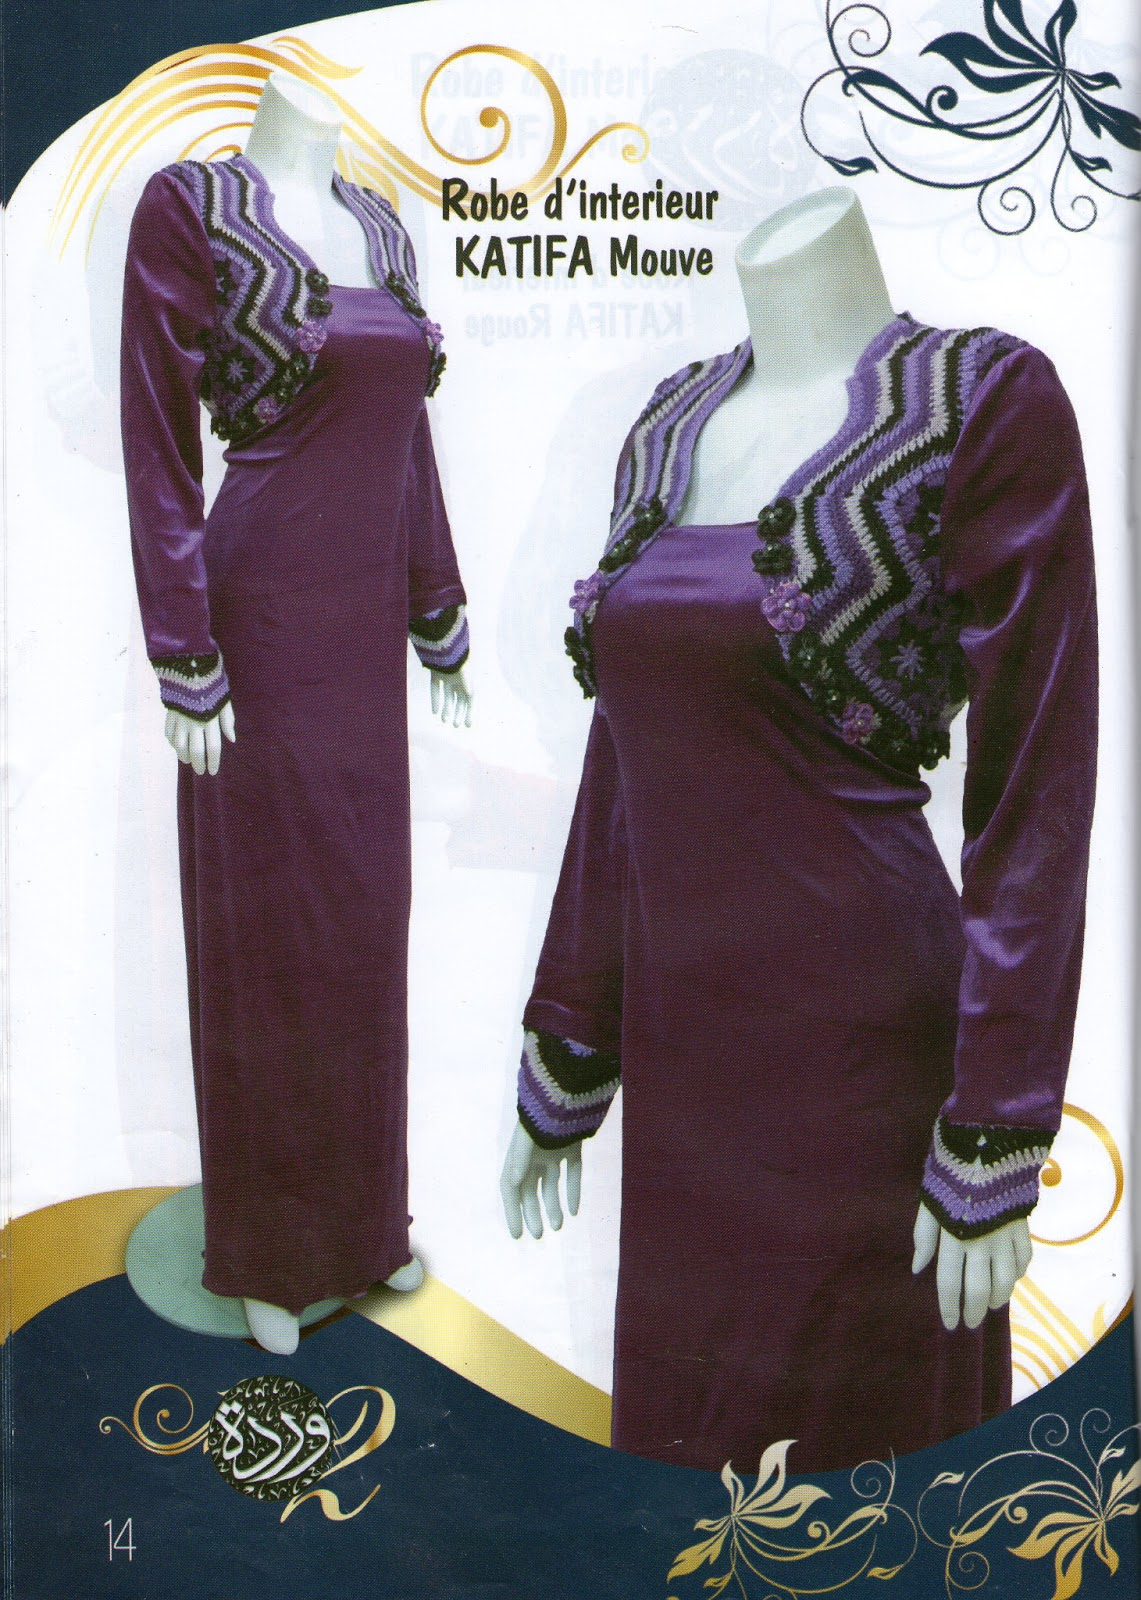 magazine warda collection1 gandoura catifa hiver2013